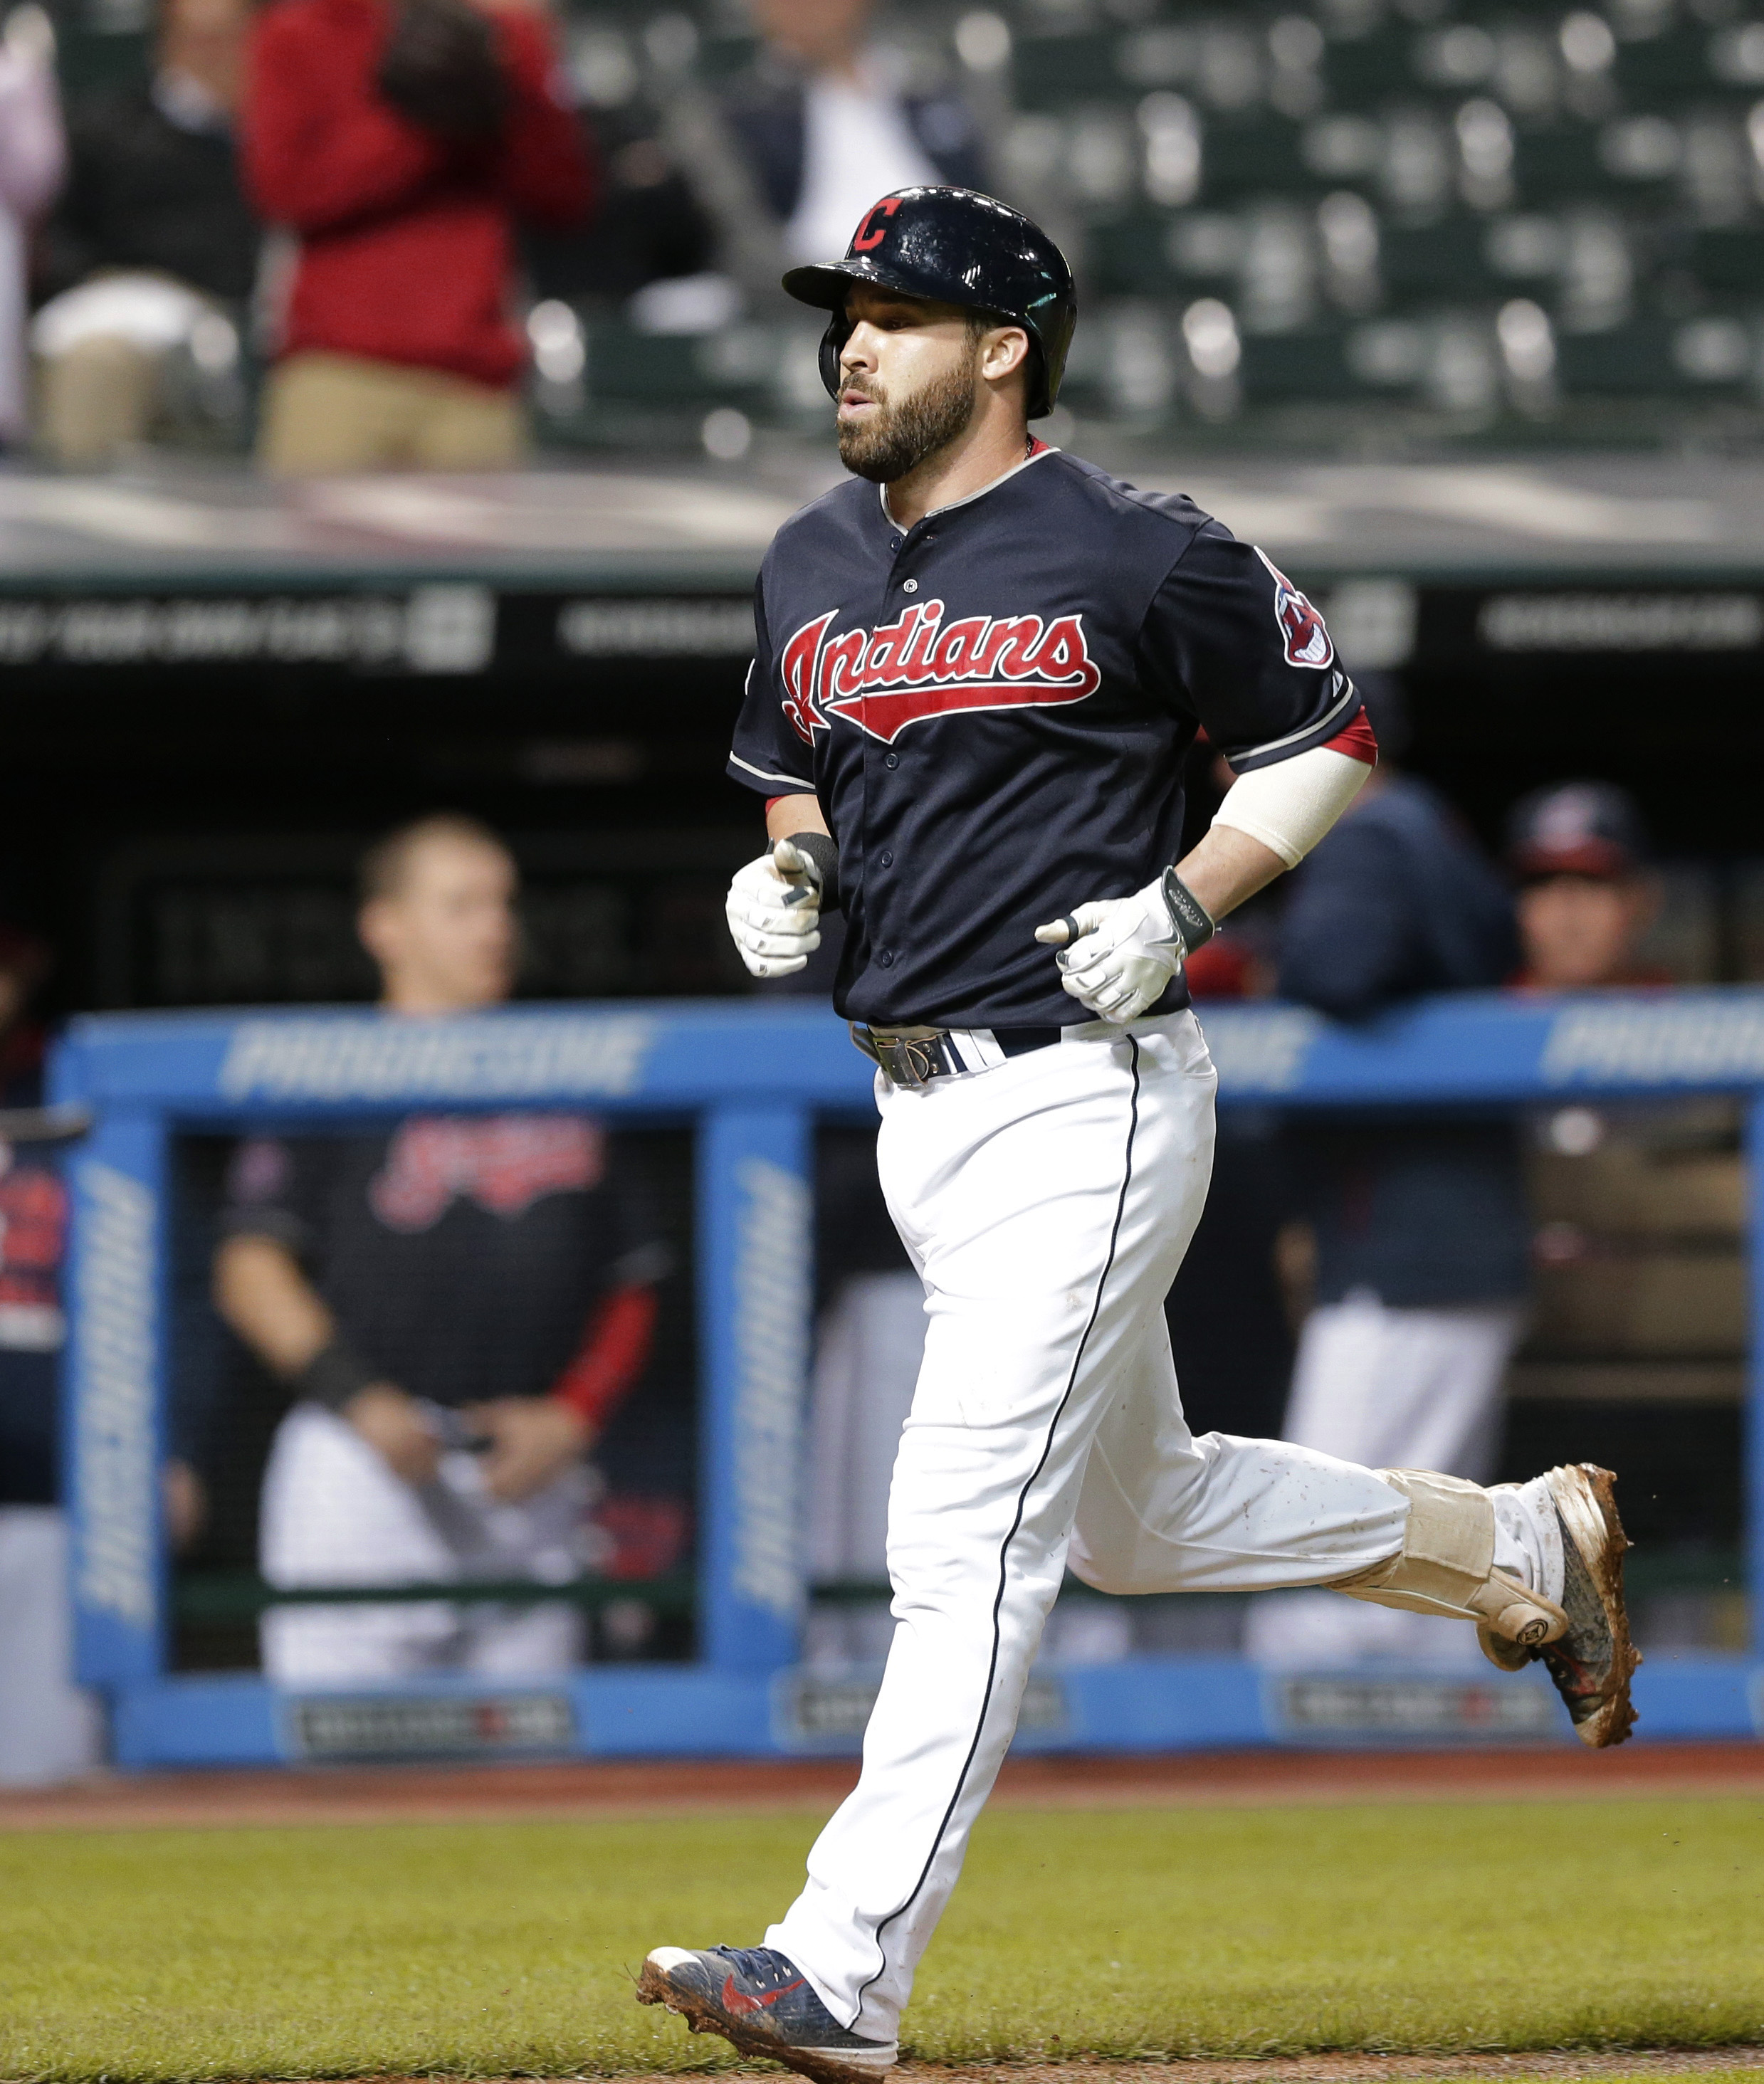 Cleveland Indians' Jason Kipnis runs the bases after hitting a solo home run off Milwaukee Brewers relief pitcher Will Smith during the eighth inning of a baseball game, Wednesday, Aug. 26, 2015, in Cleveland. (AP Photo/Tony Dejak)